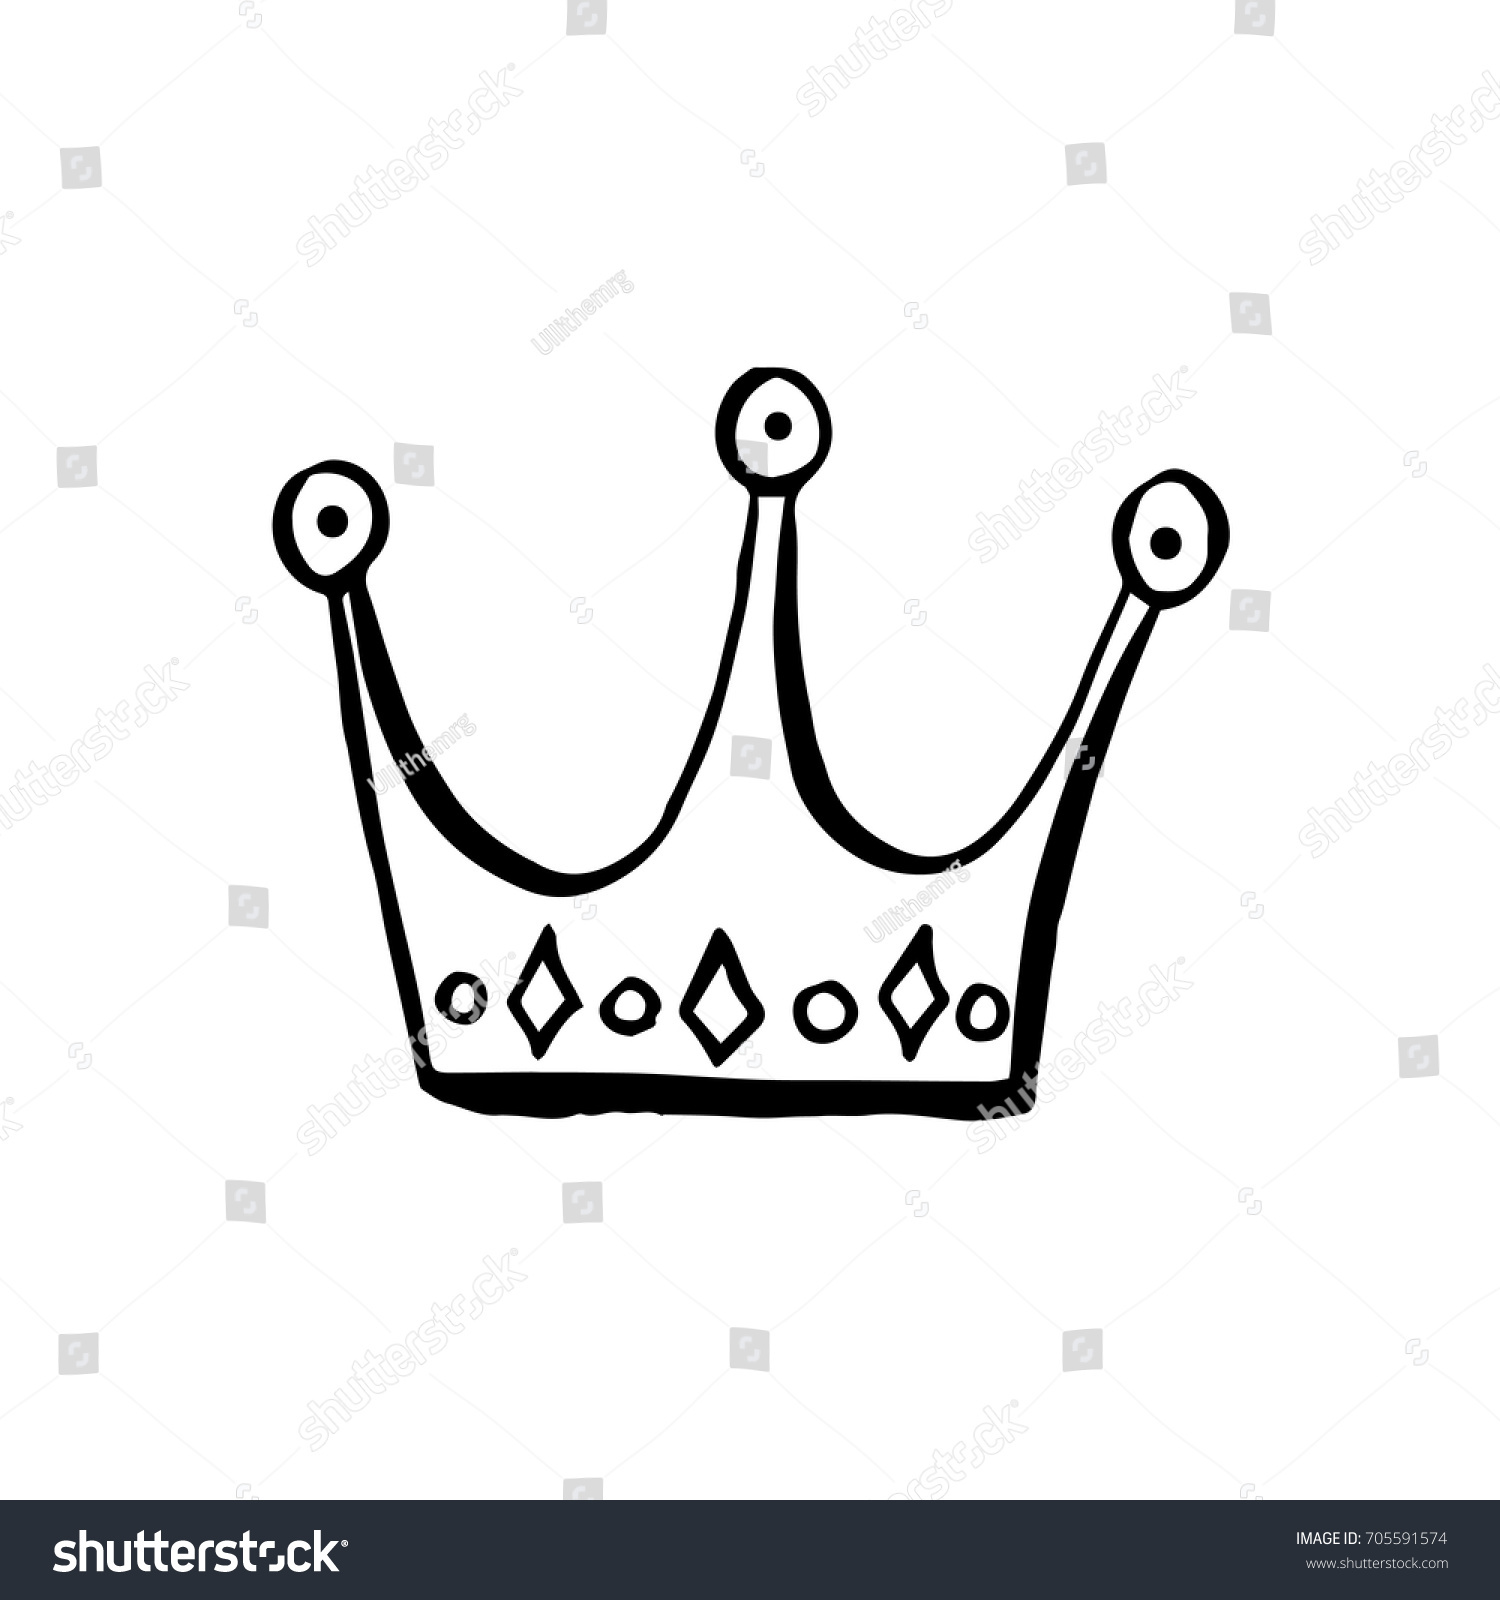 crown cute hand draw sketch cartoon style outline for production of the pattern